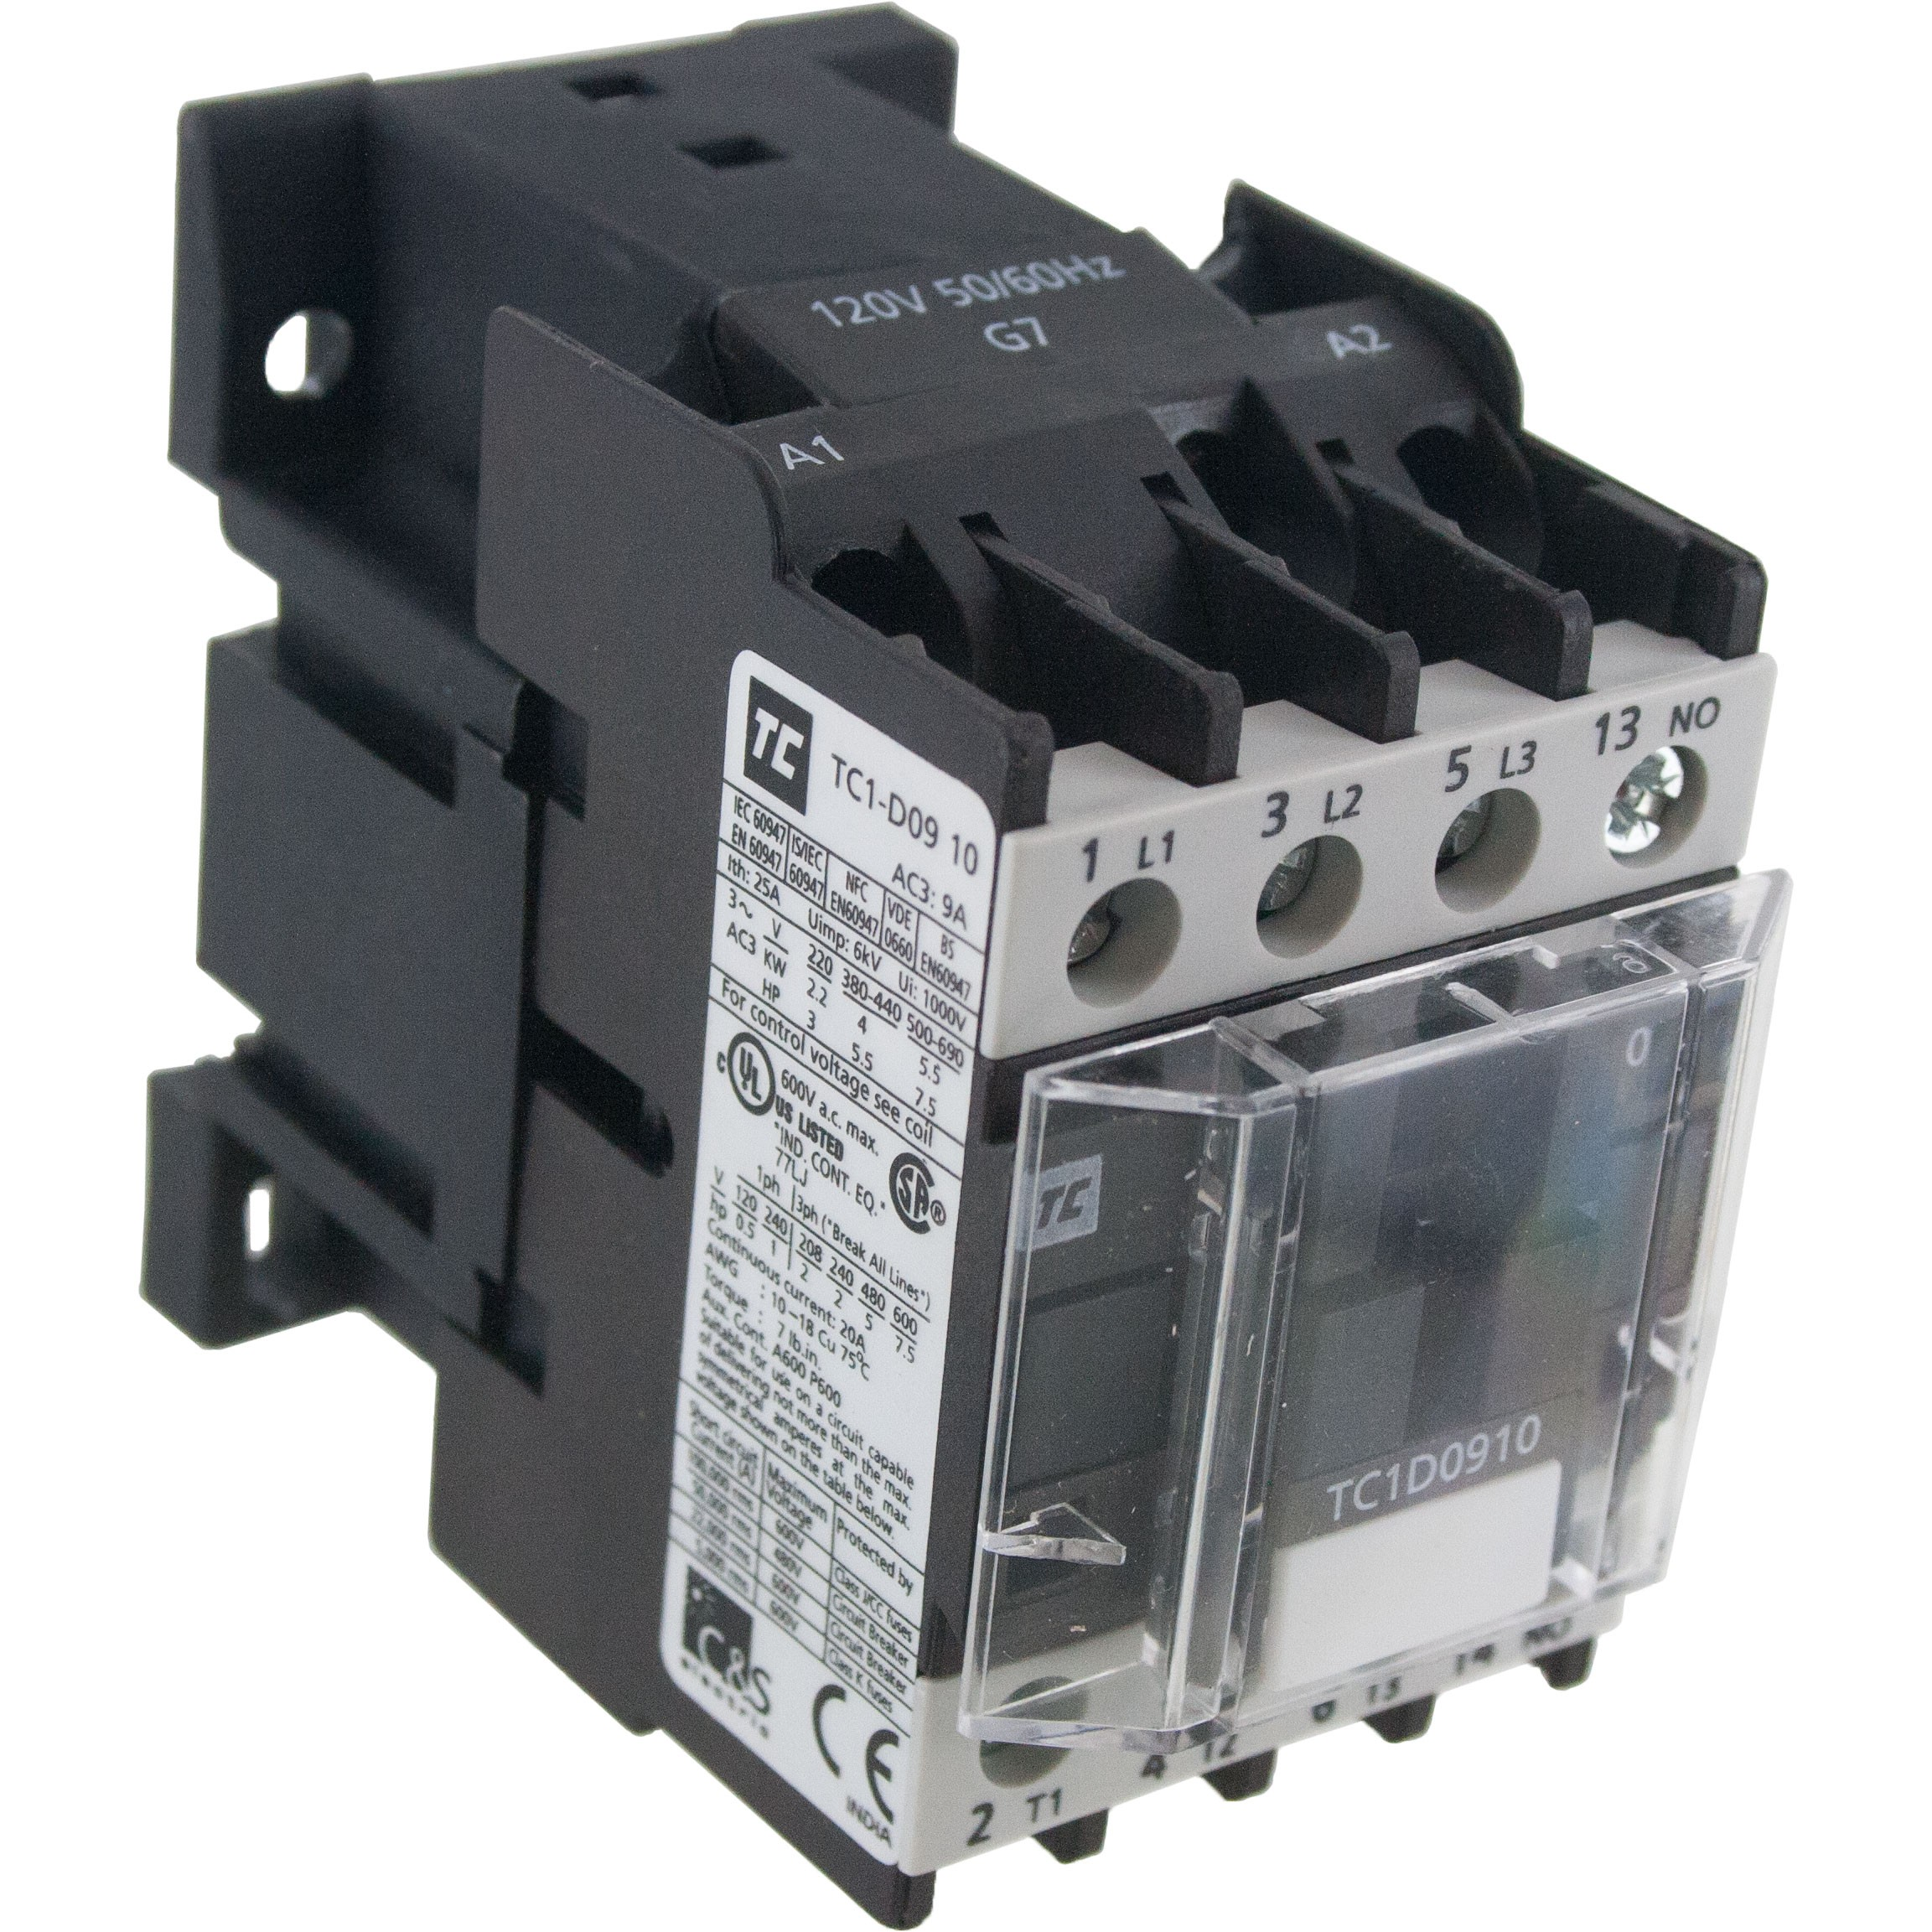 3 Pole Contactor 9 Amp 24 Vac Coil Angle